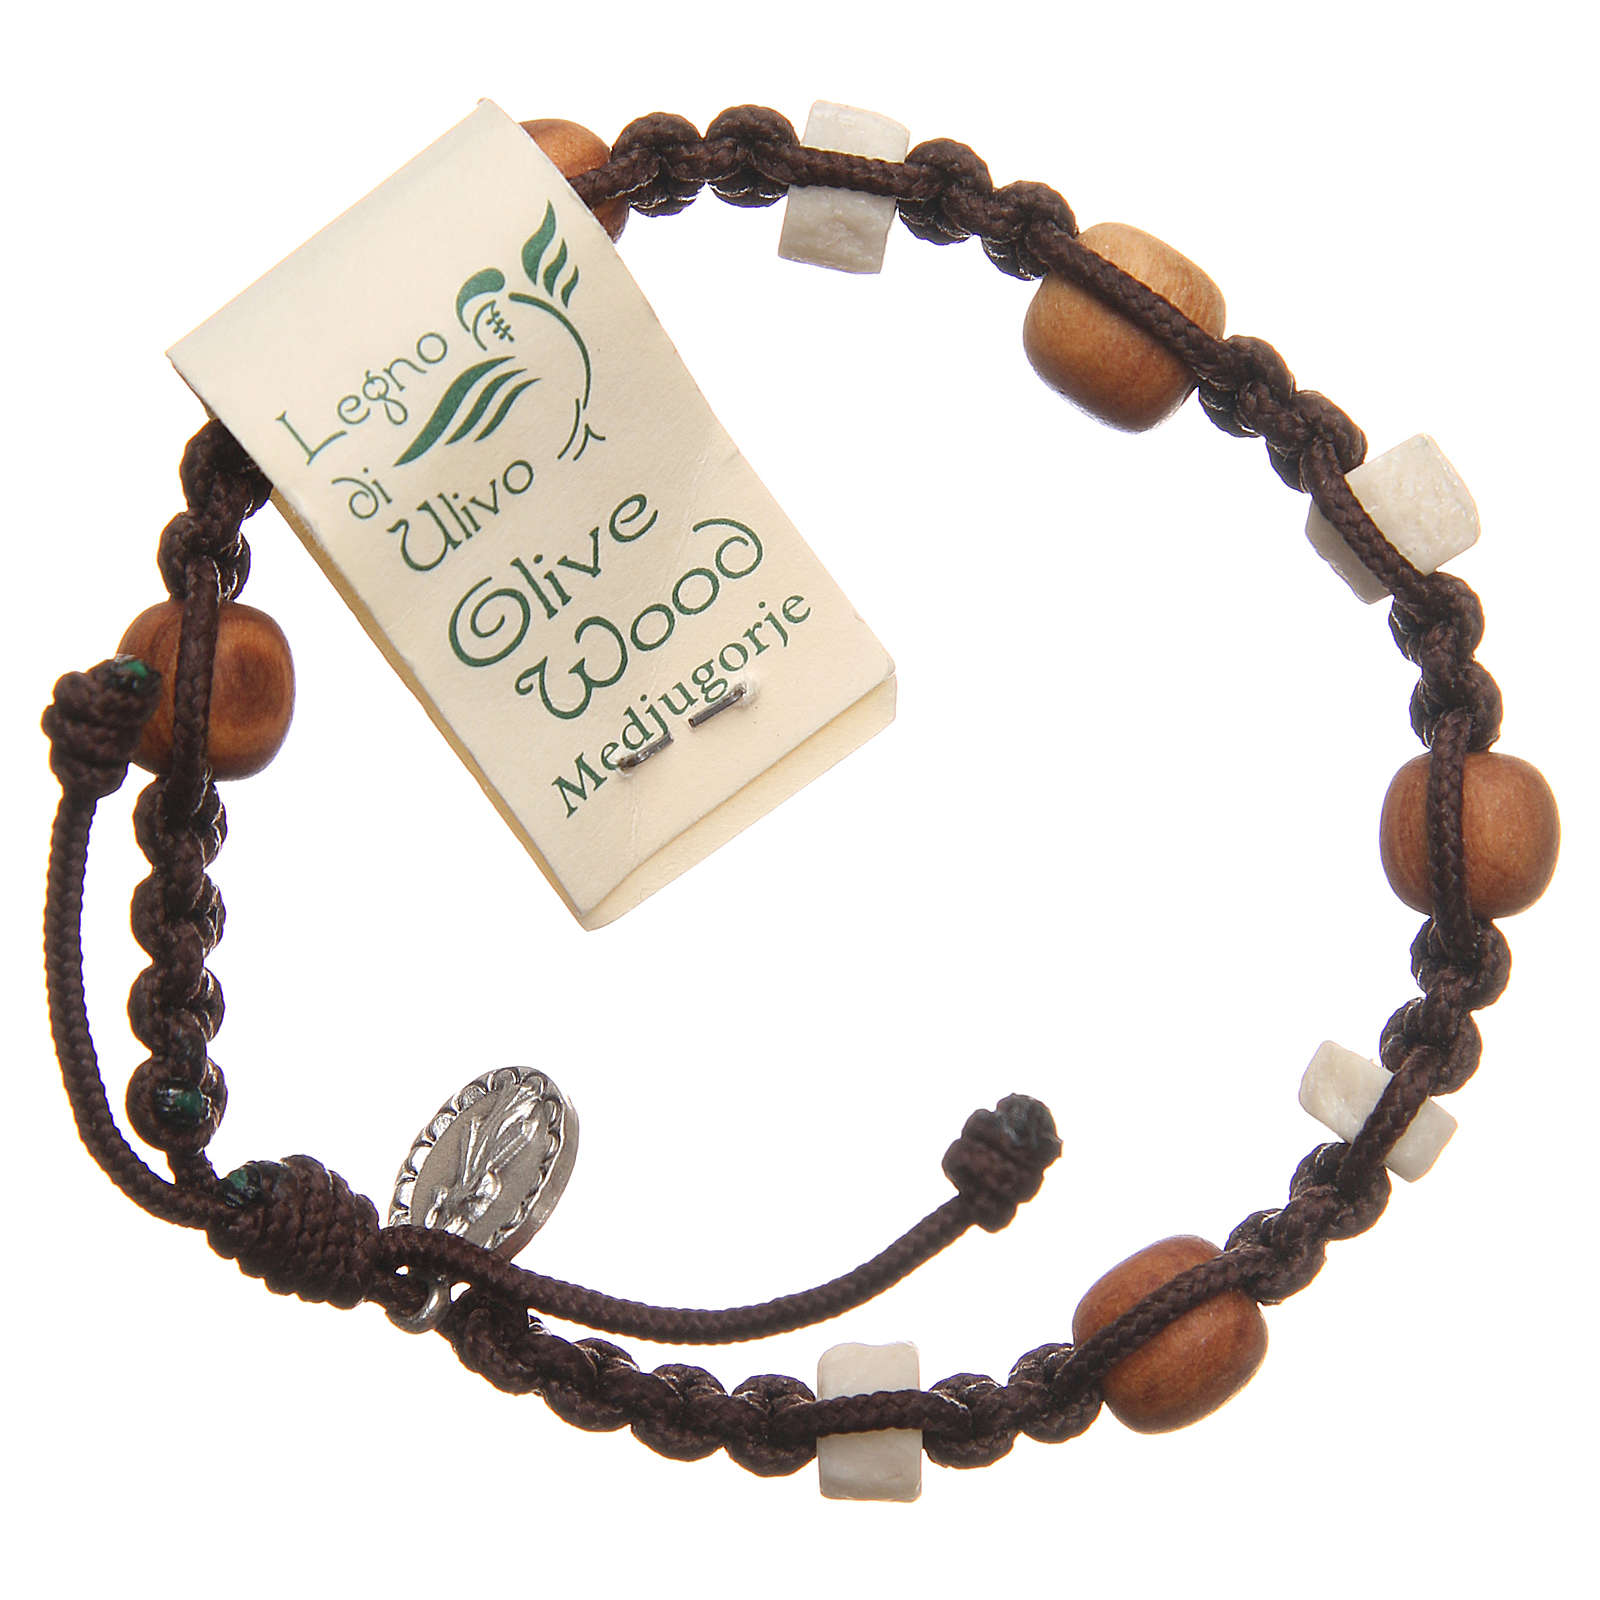 Bracelet in olive wood with grains in white Medjugorje stone and brown cord 4